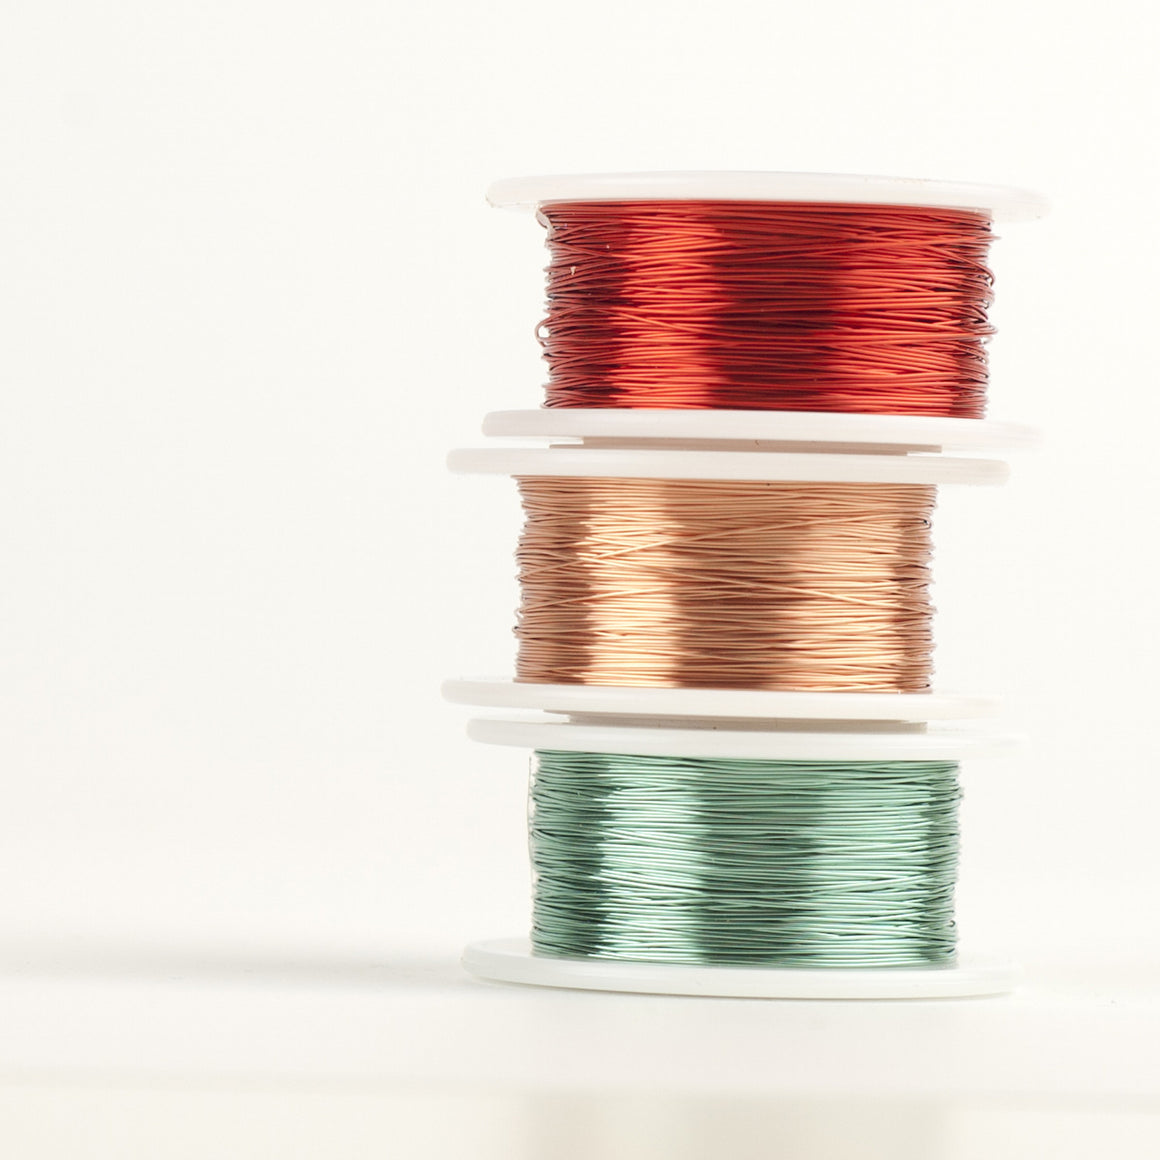 Craft Wire -  Spring 2016 colors - Extra long 3 spools - 120 feet each - Yooladesign